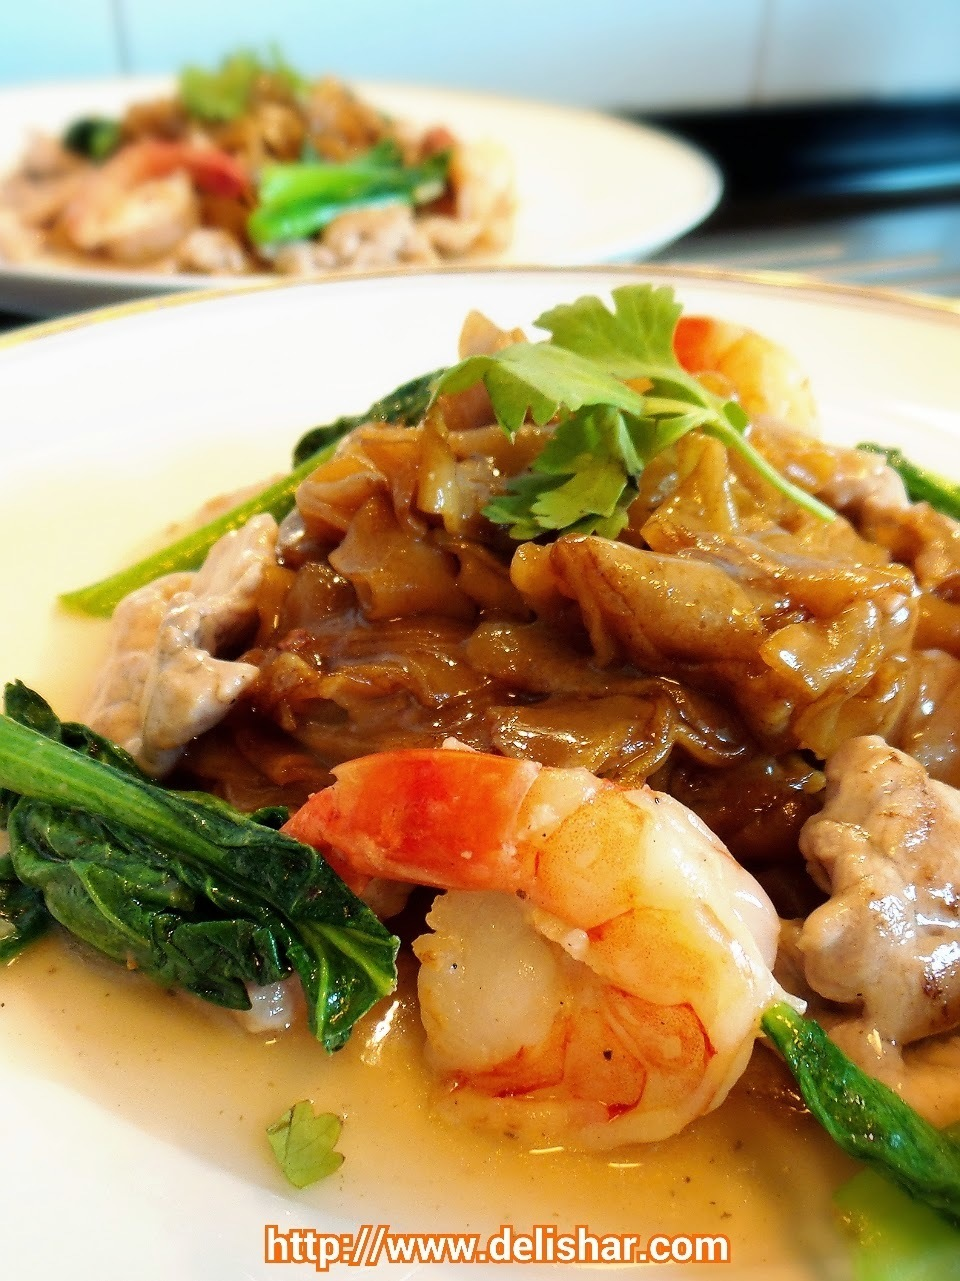 Hor Fun (Flat rice noodle in gravy)